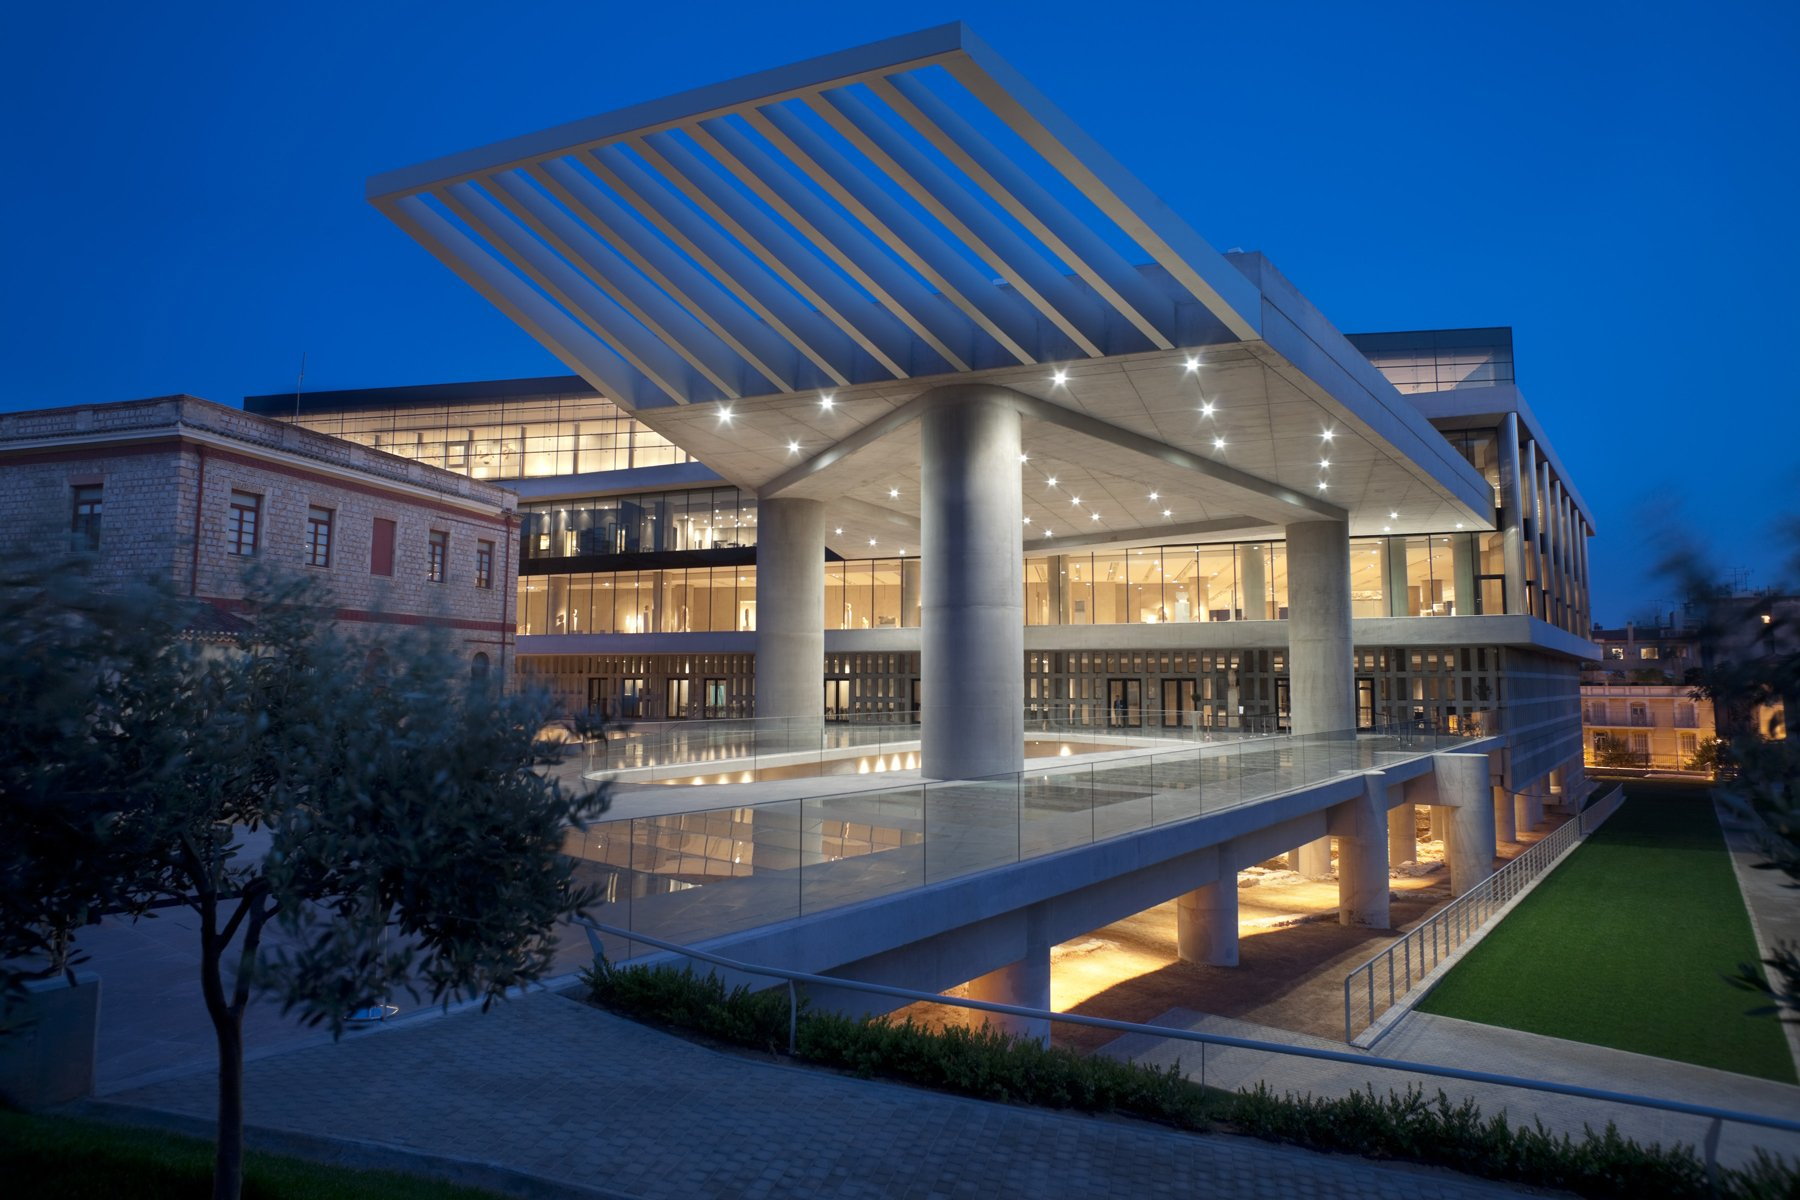 The New Acropolis Museum Review – Ancient History et cetera